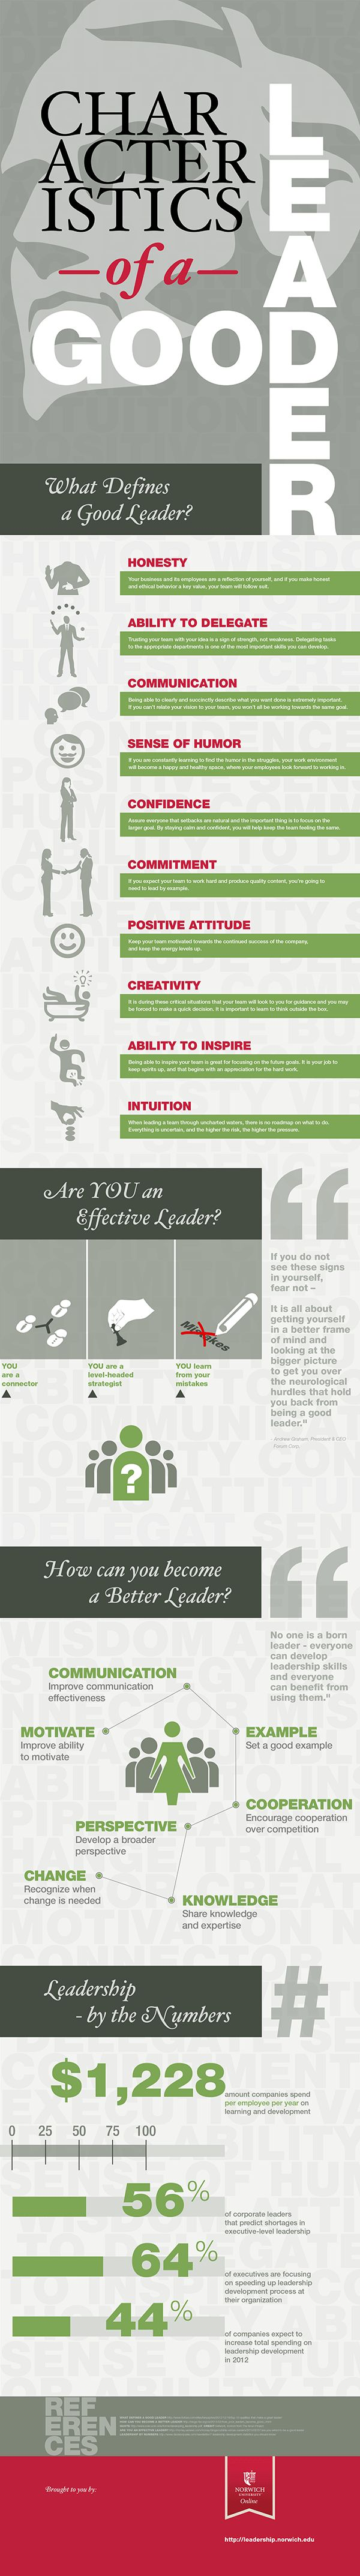 What are the characteristics of a good leader – Infographic   Leading Effectively: Official Blog of the Center for Creative Leadership